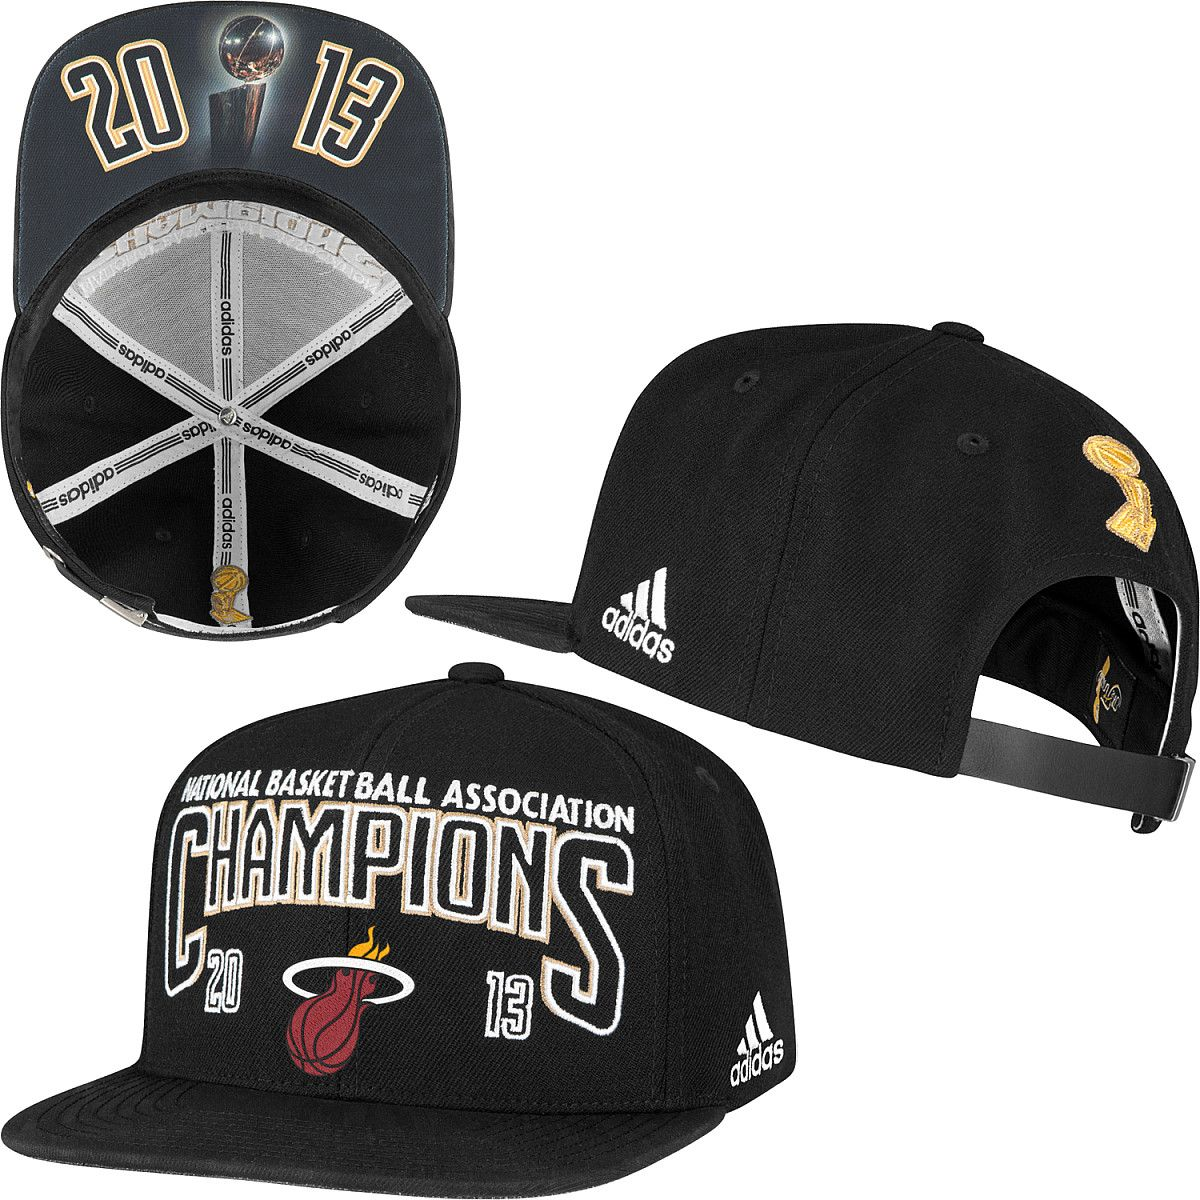 04ebca192c5a7 adidas Miami Heat 2013 NBA Finals Champions Locker Room Hat - NBAStore.com